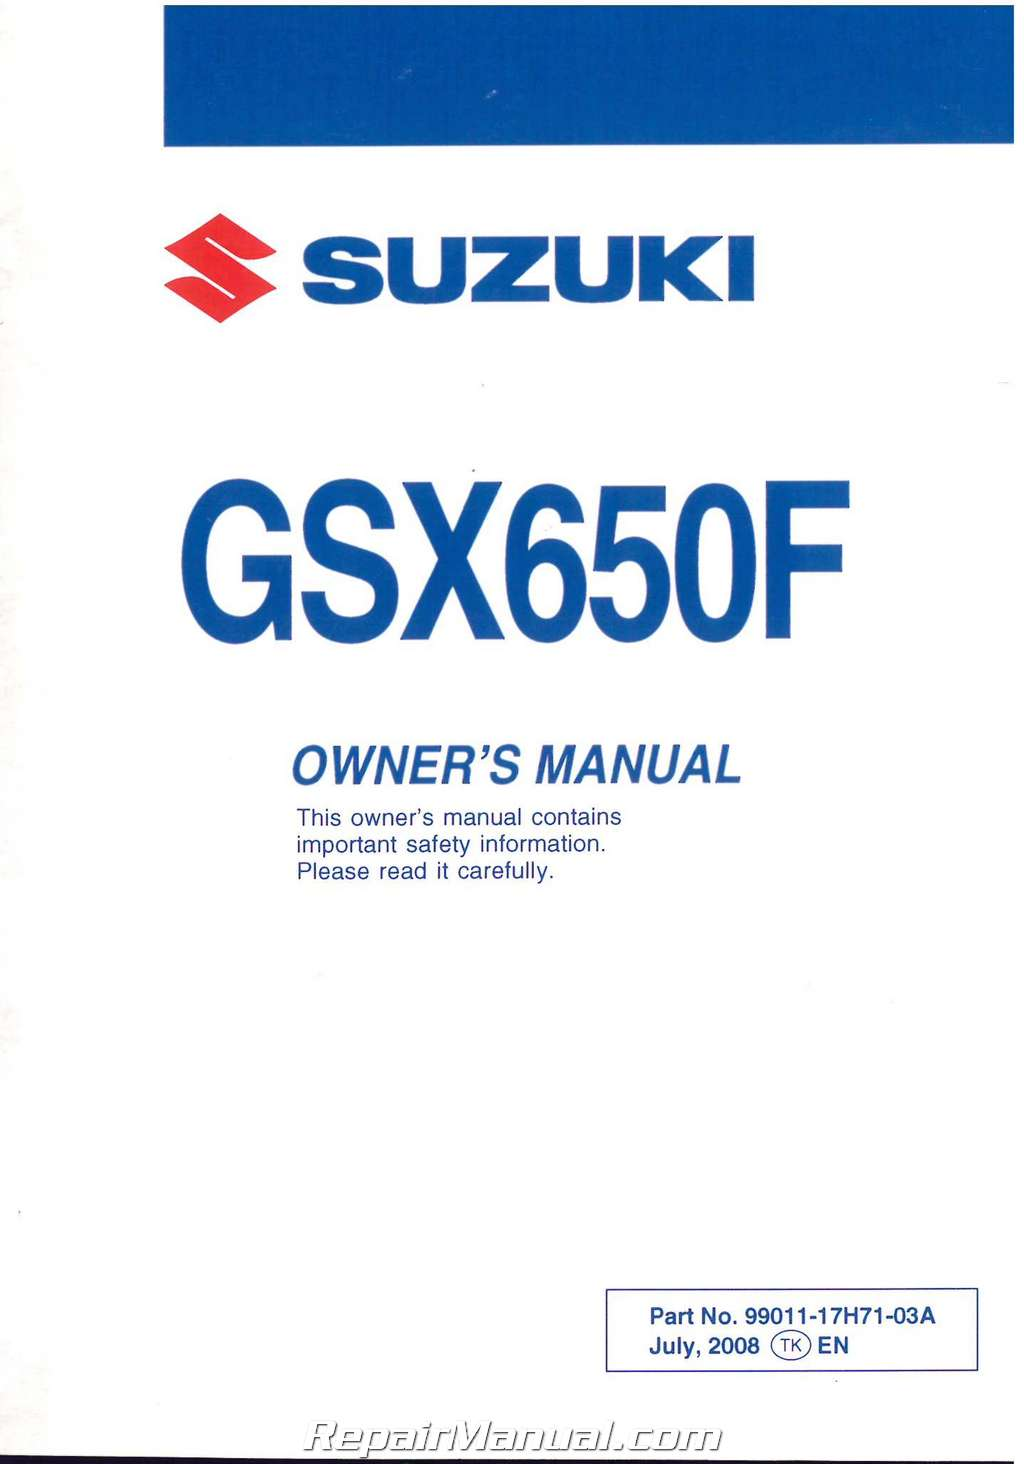 2009 suzuki gsx650f motorcycle owners manual rh repairmanual com saxon motorcycle owners manual suzuki motorcycle owners manual download